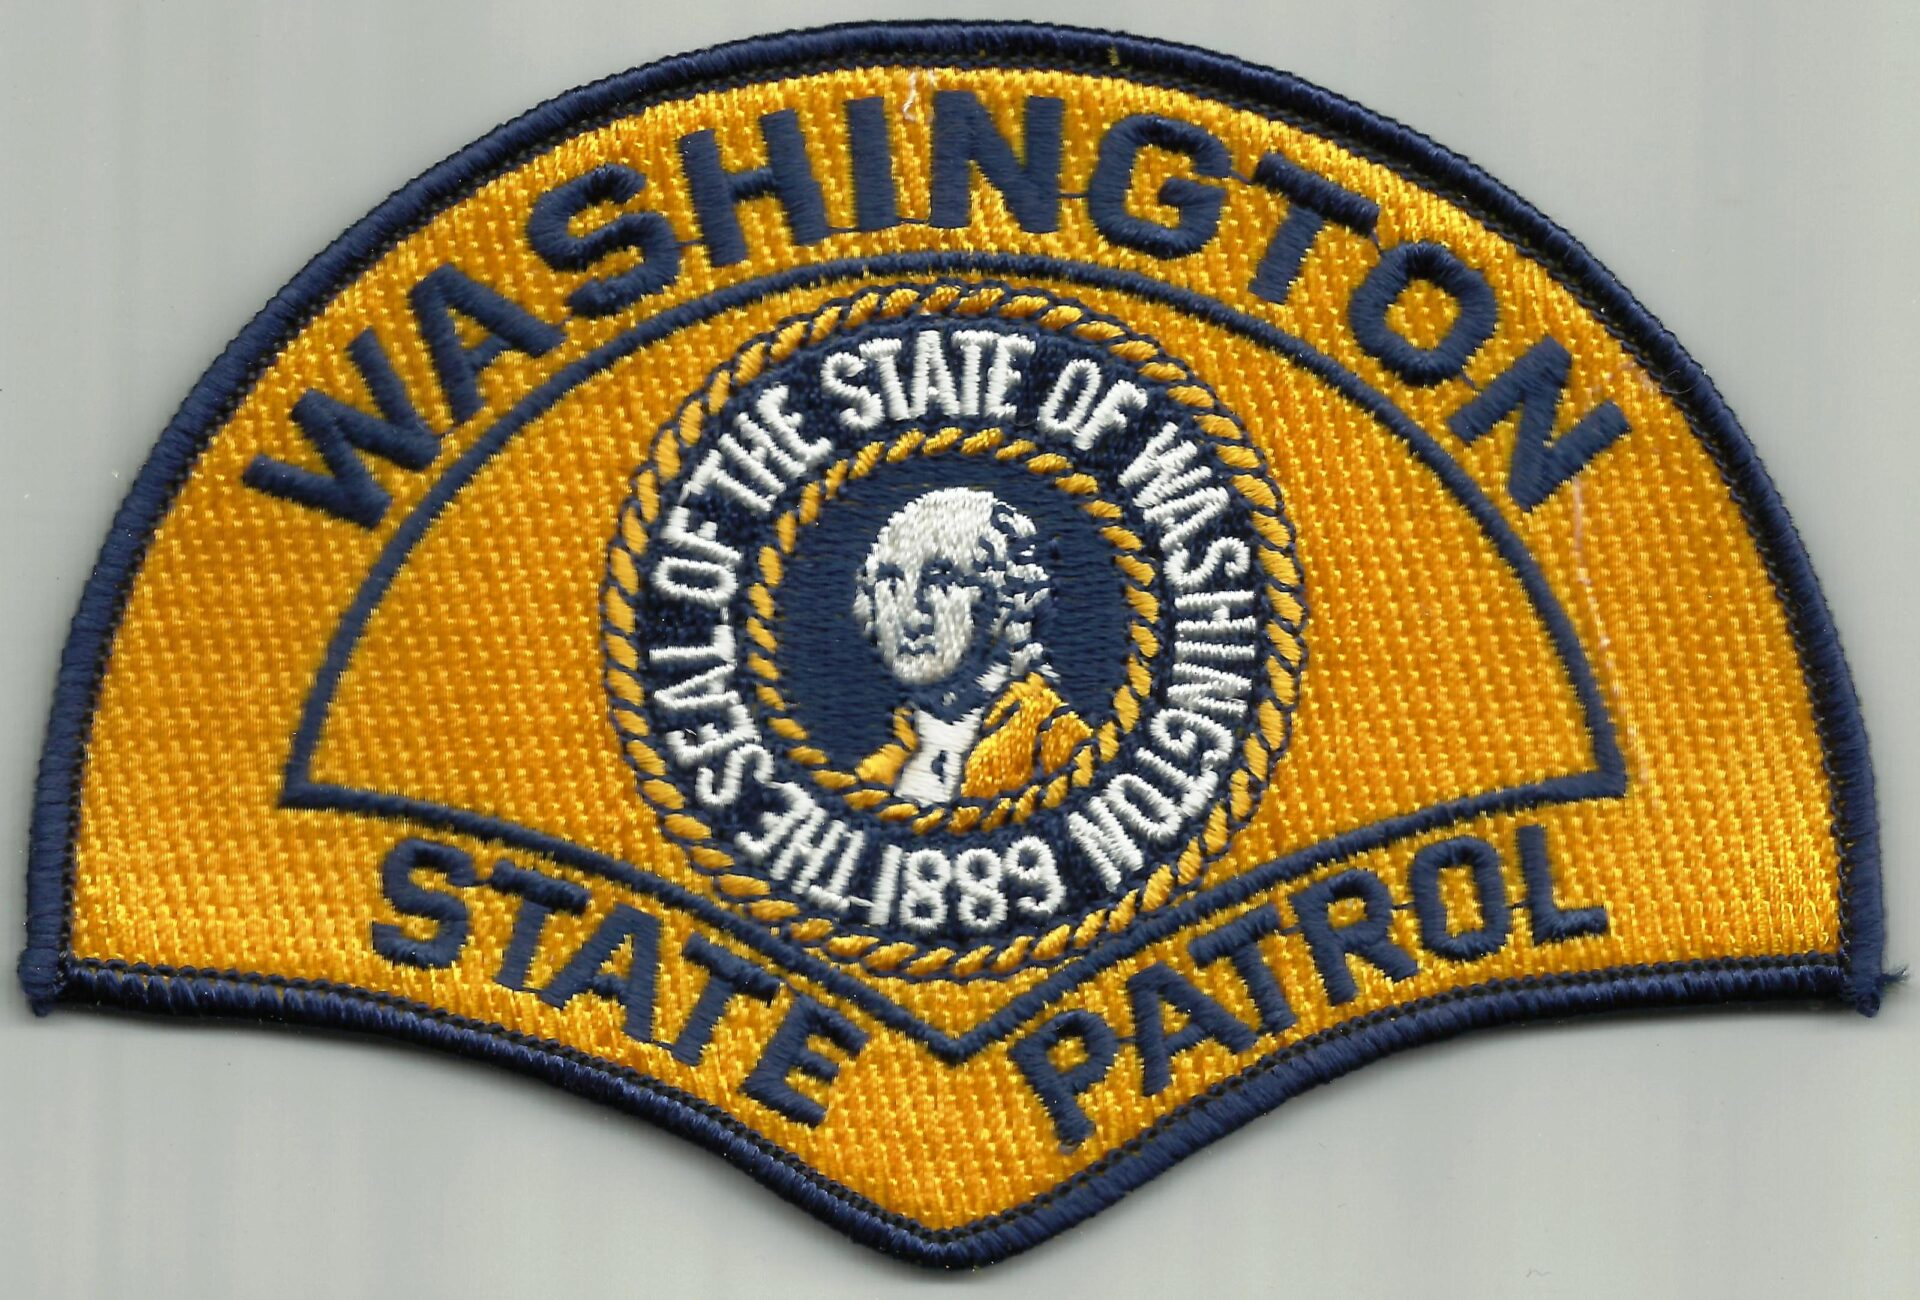 WSP Investigates Deadly Accident Linked to Distraction